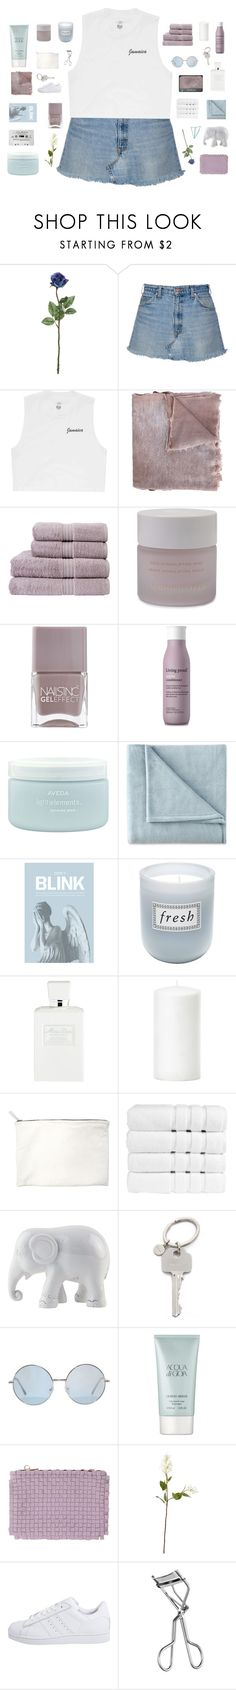 """""""my duty is to my heart - BotHSC"""" by lost-on-the-horizon ❤ liked on Polyvore featuring Billabong, Avant Toi, Christy, Omorovicza, Nails Inc., NARS Cosmetics, Living Proof, Aveda, JCPenney Home and Blink"""